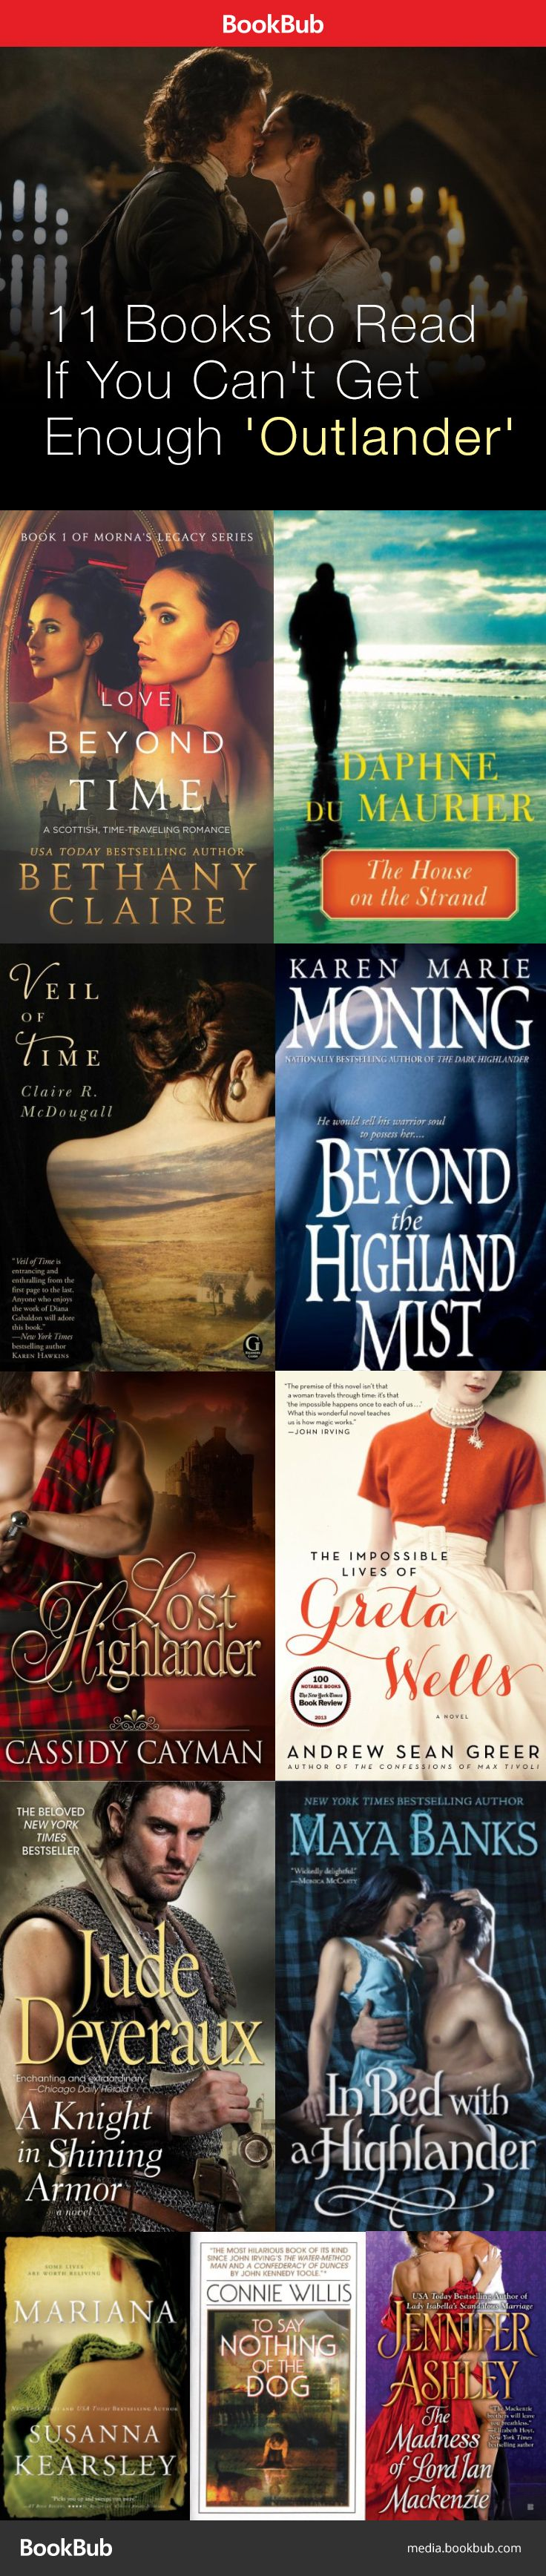 Books for Outlander fans to devour! Featuring time travel, strong heroines, the Scottish highlands, and more